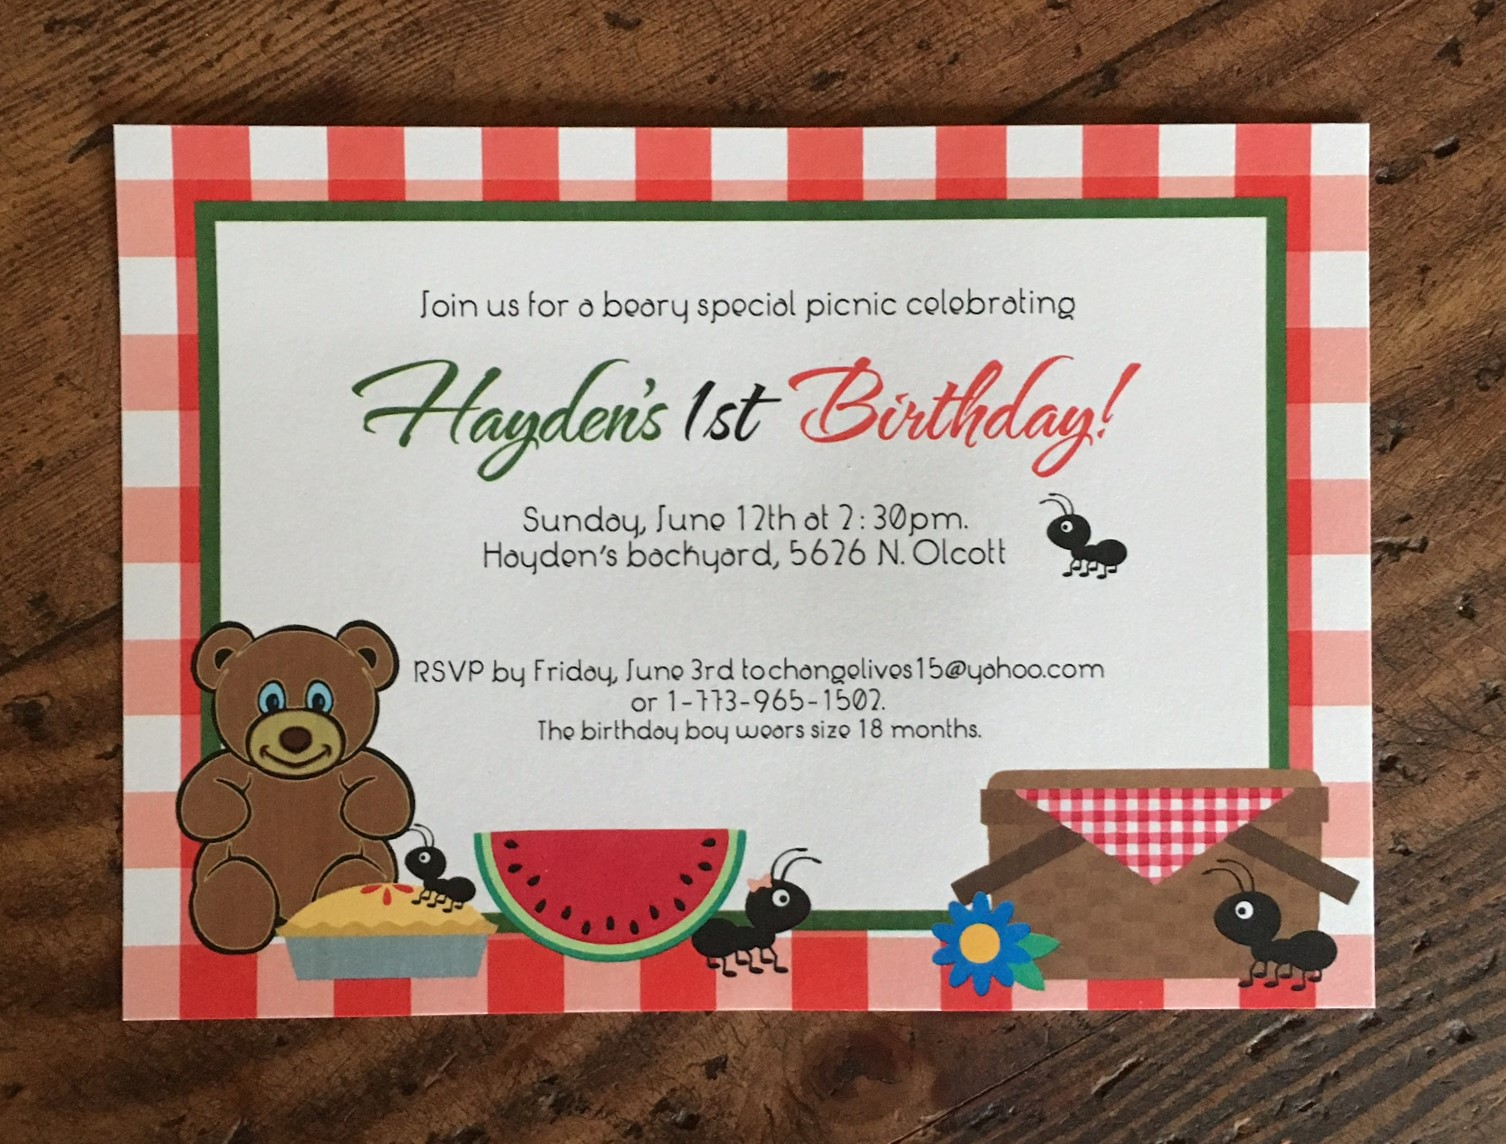 Birthday and anniversary party invitations erickson design img7468 stopboris Image collections